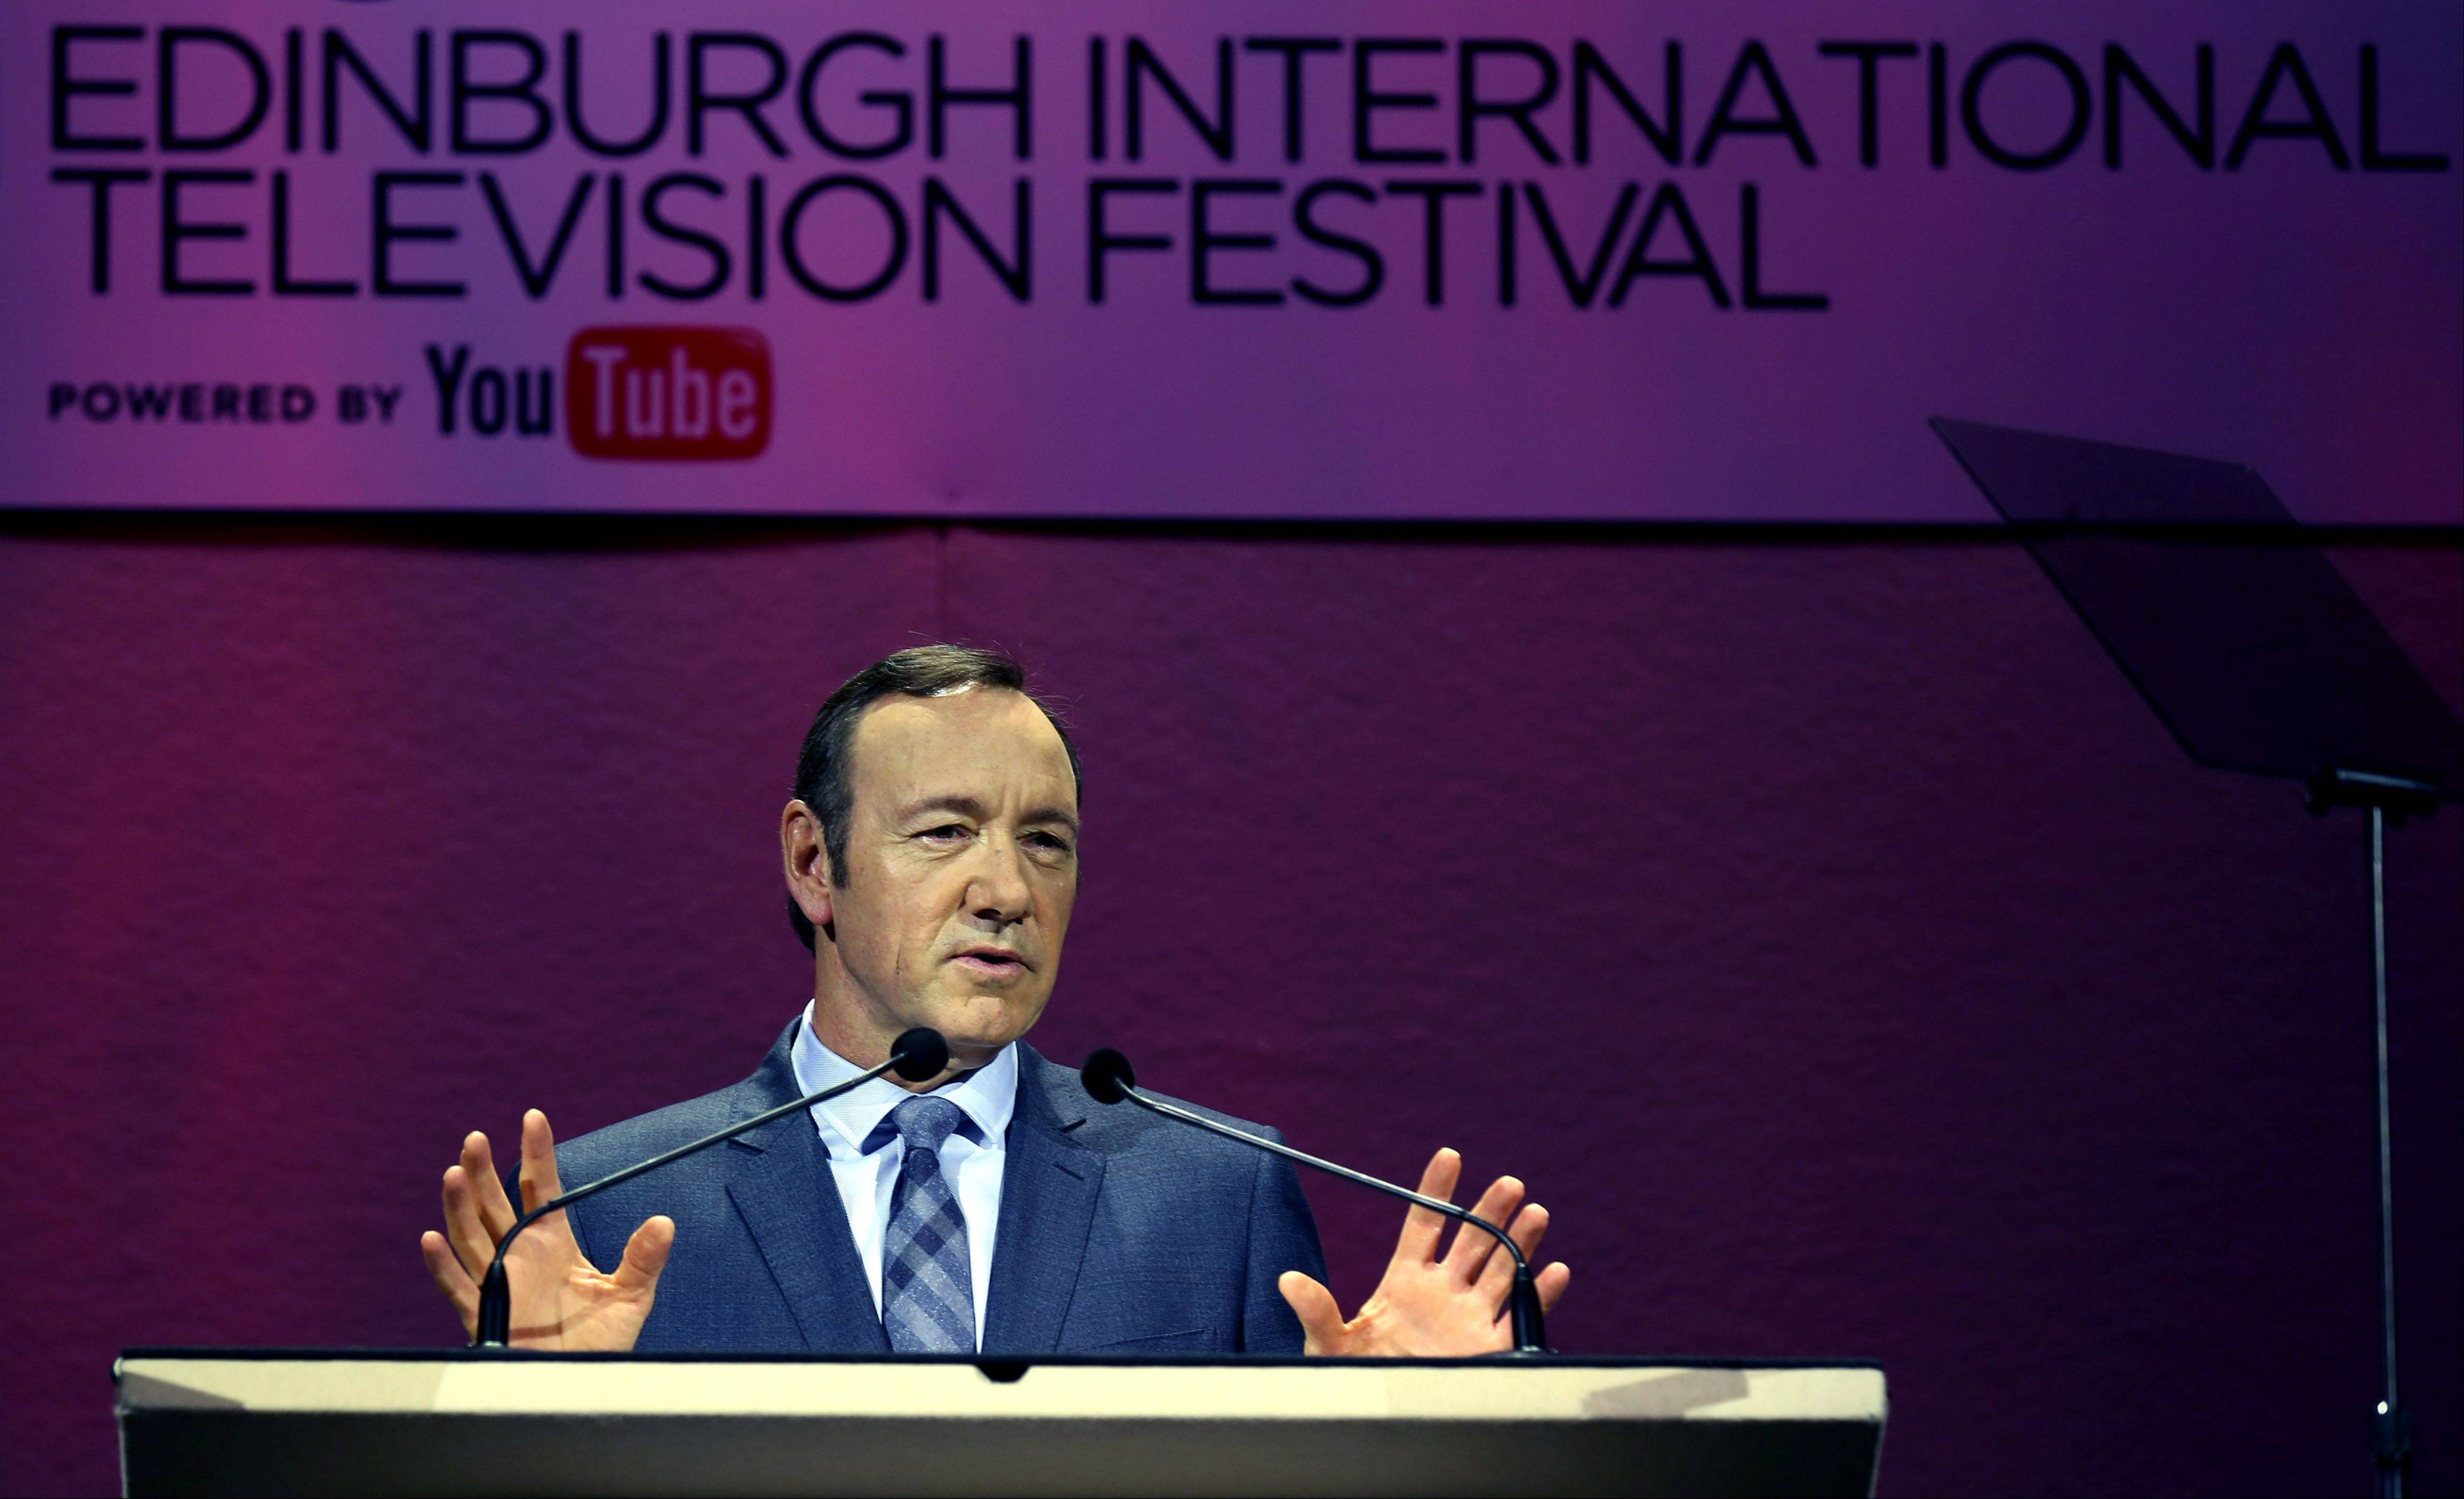 Double-Oscar winner Kevin Spacey says television has overtaken cinema as the home of quality character-driven drama.